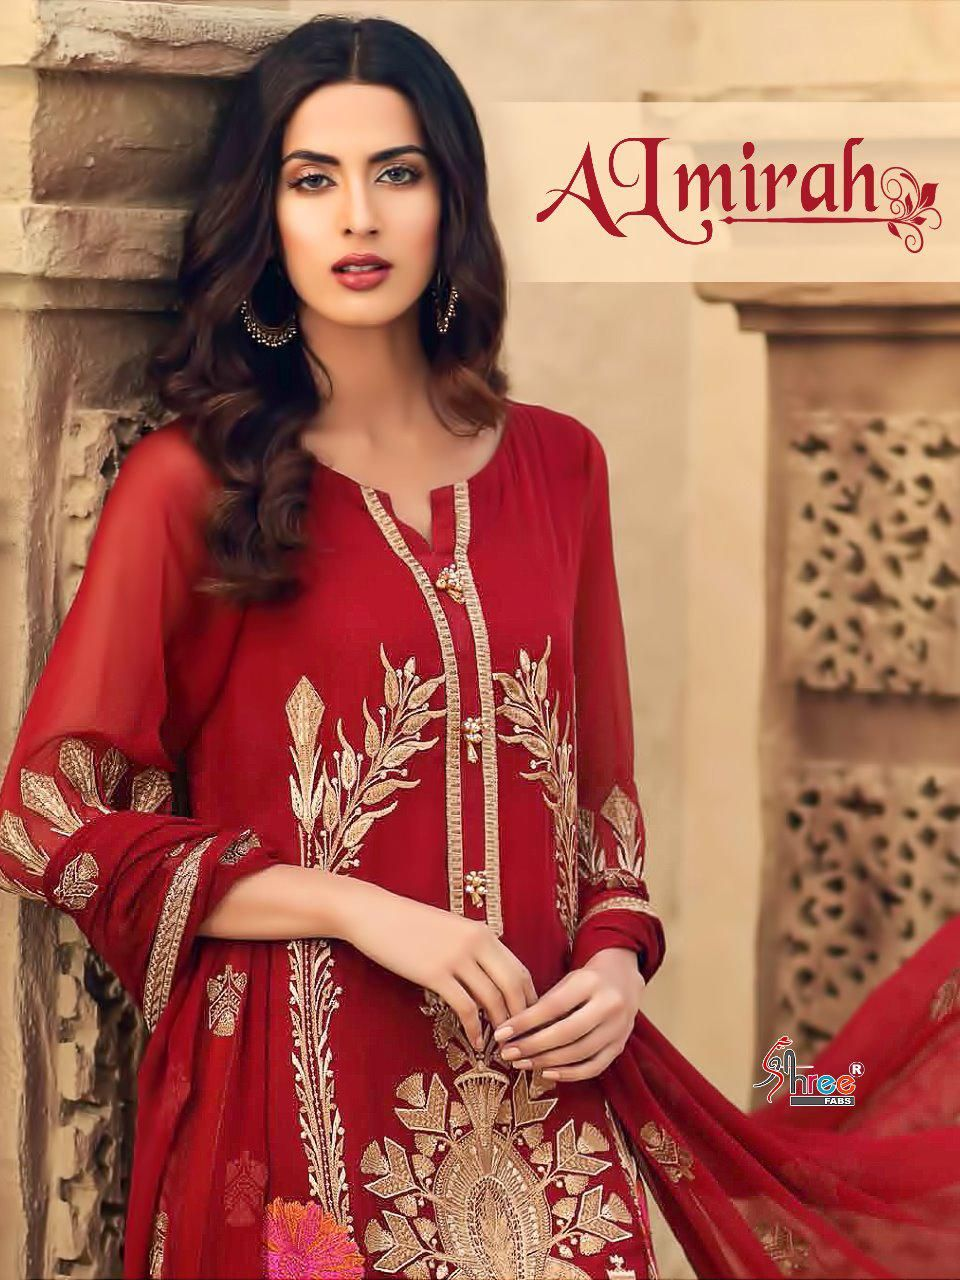 bf98bc3d0c Shree Fab Almirah Pure Cotton With Embroidery Suit (6 Pc Set ...